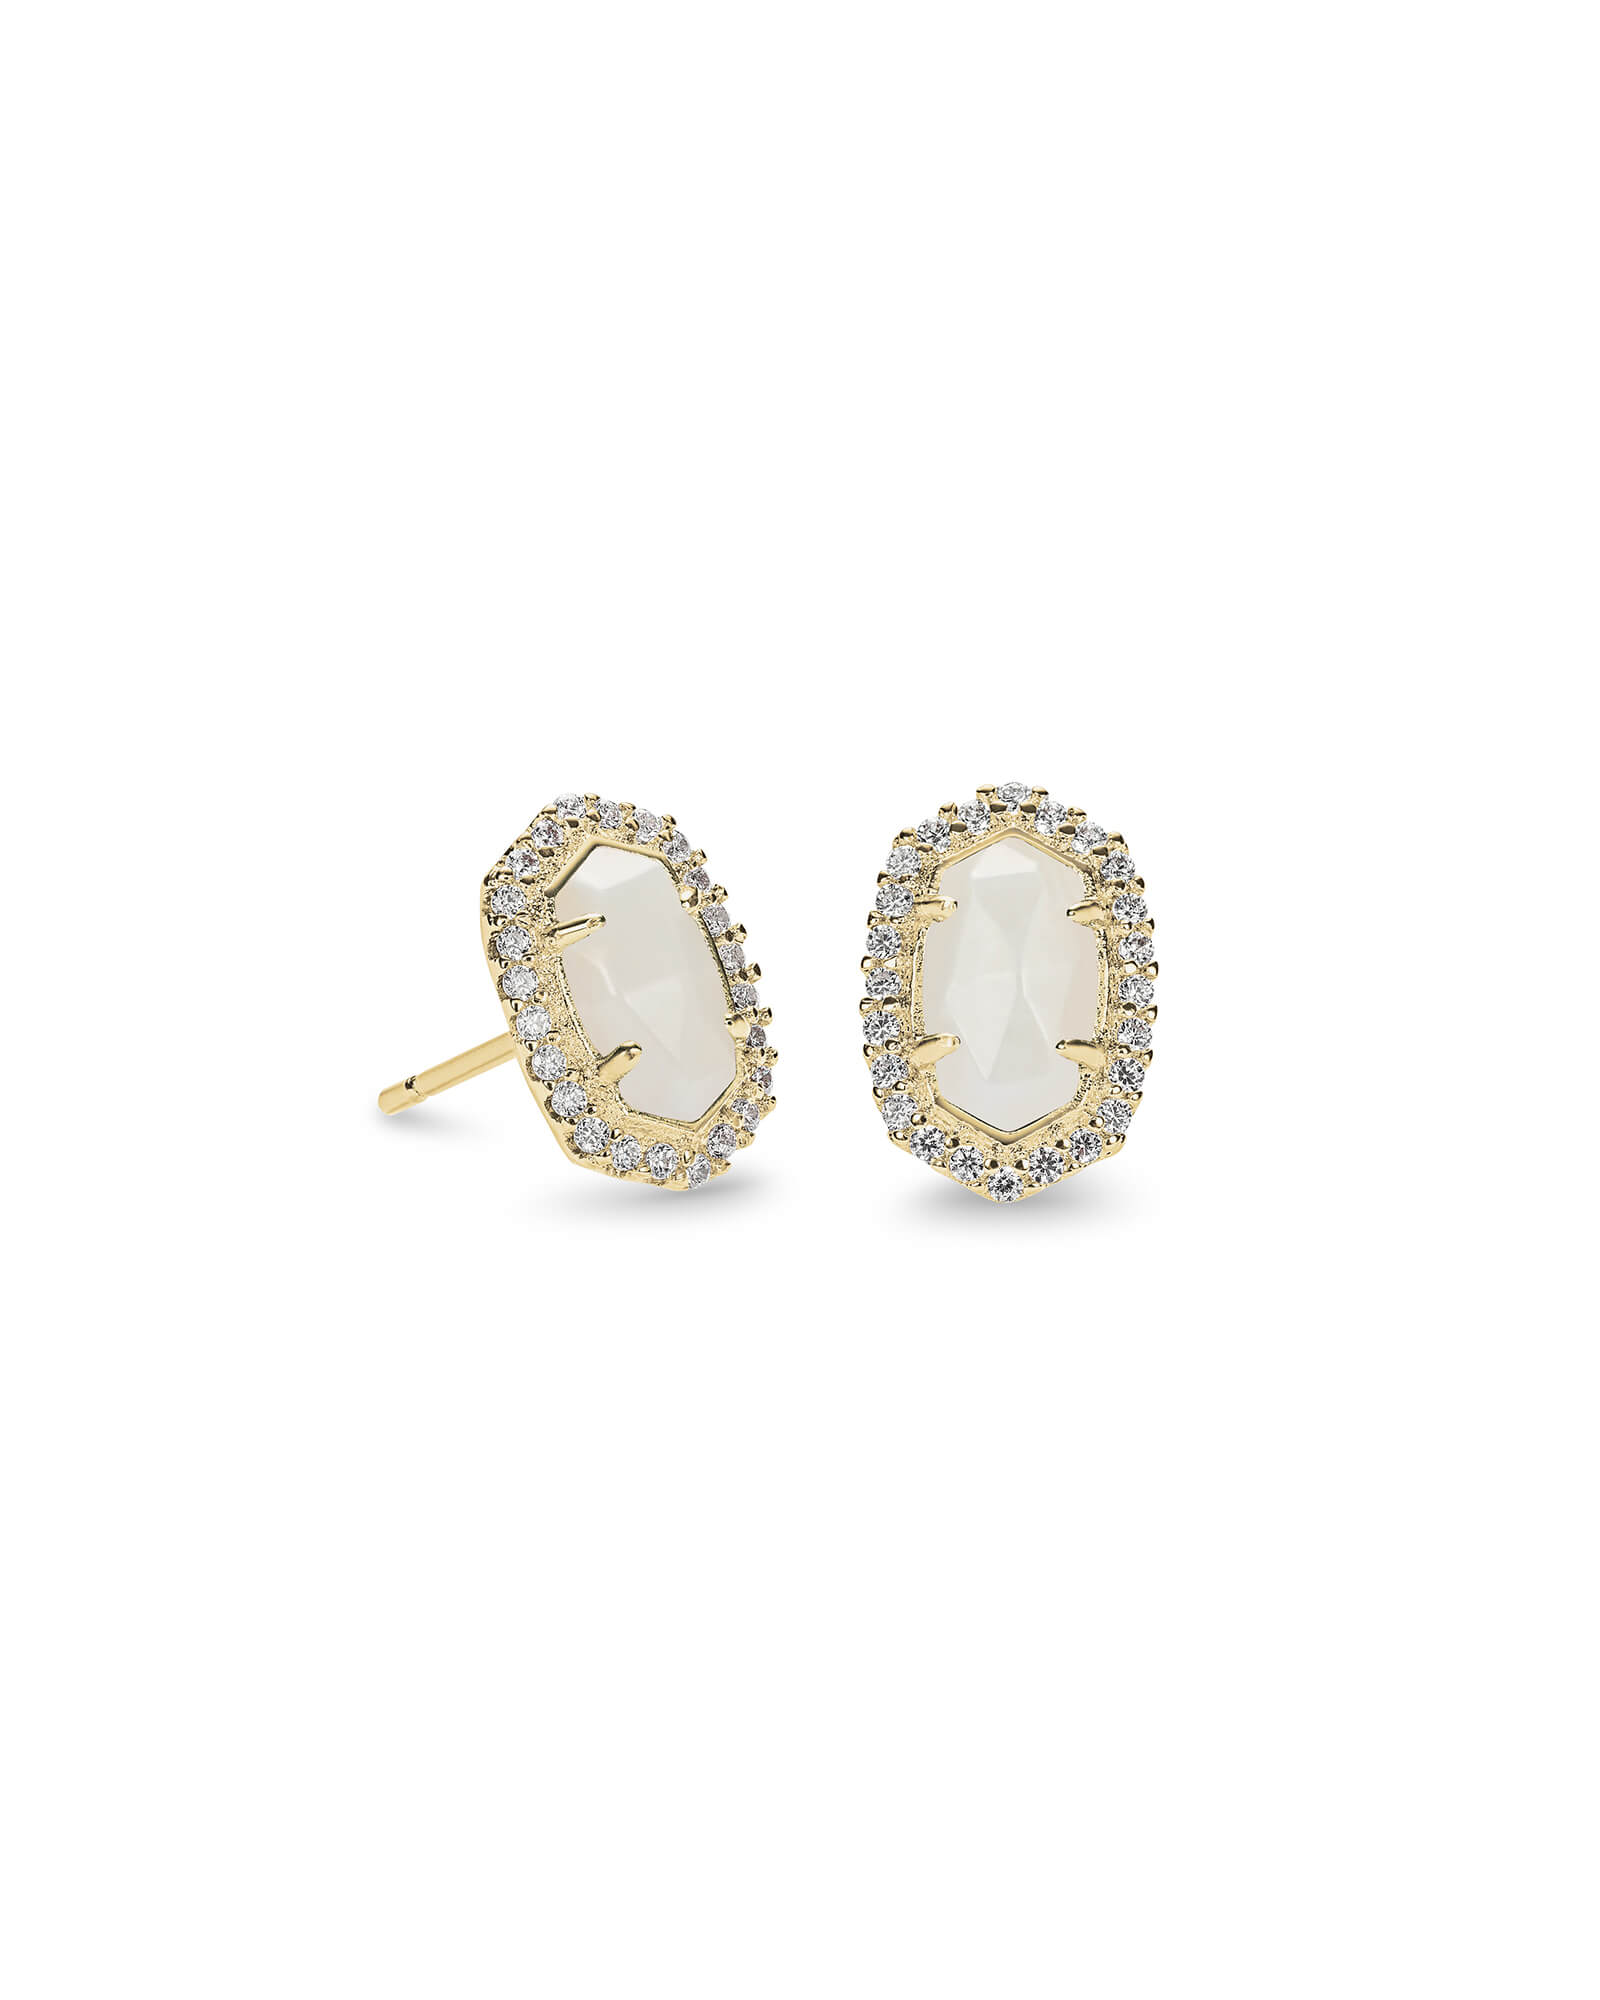 Cade Gold Stud Earrings in White Pearl